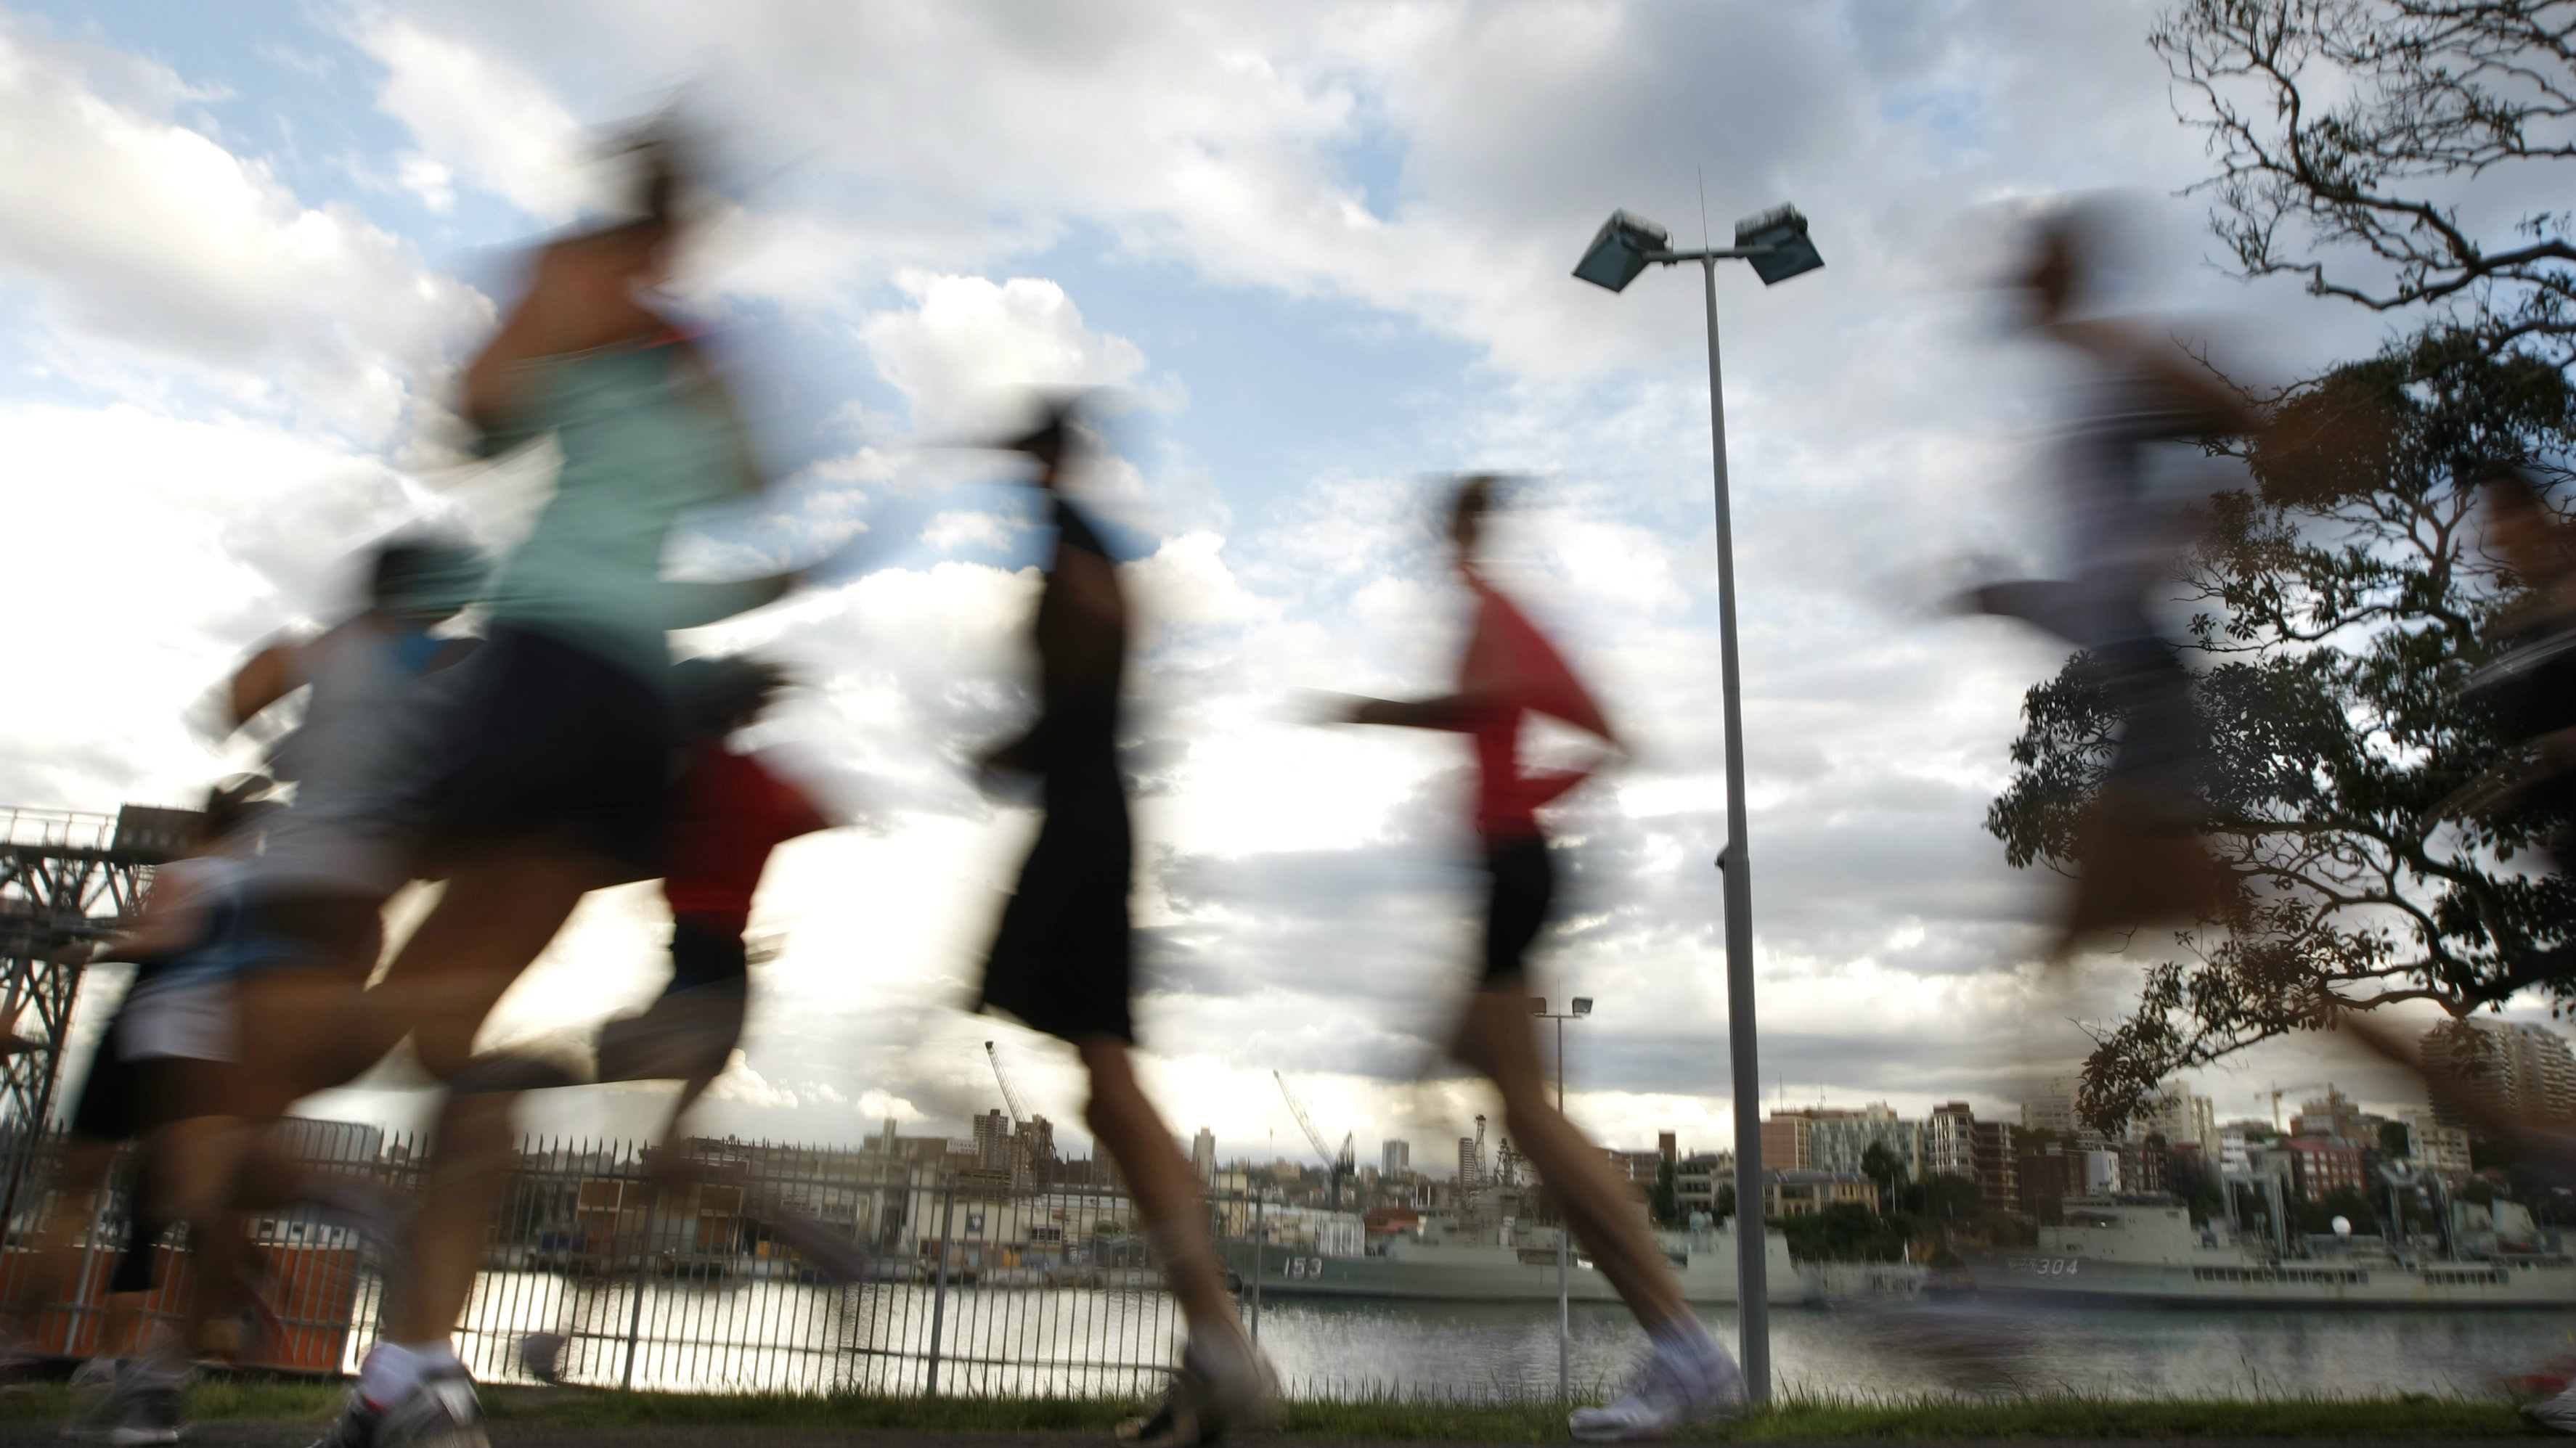 Runners participate in a weekly, after-work biathlon at The Domain adjacent to Sydney's central business district November 20, 2008.